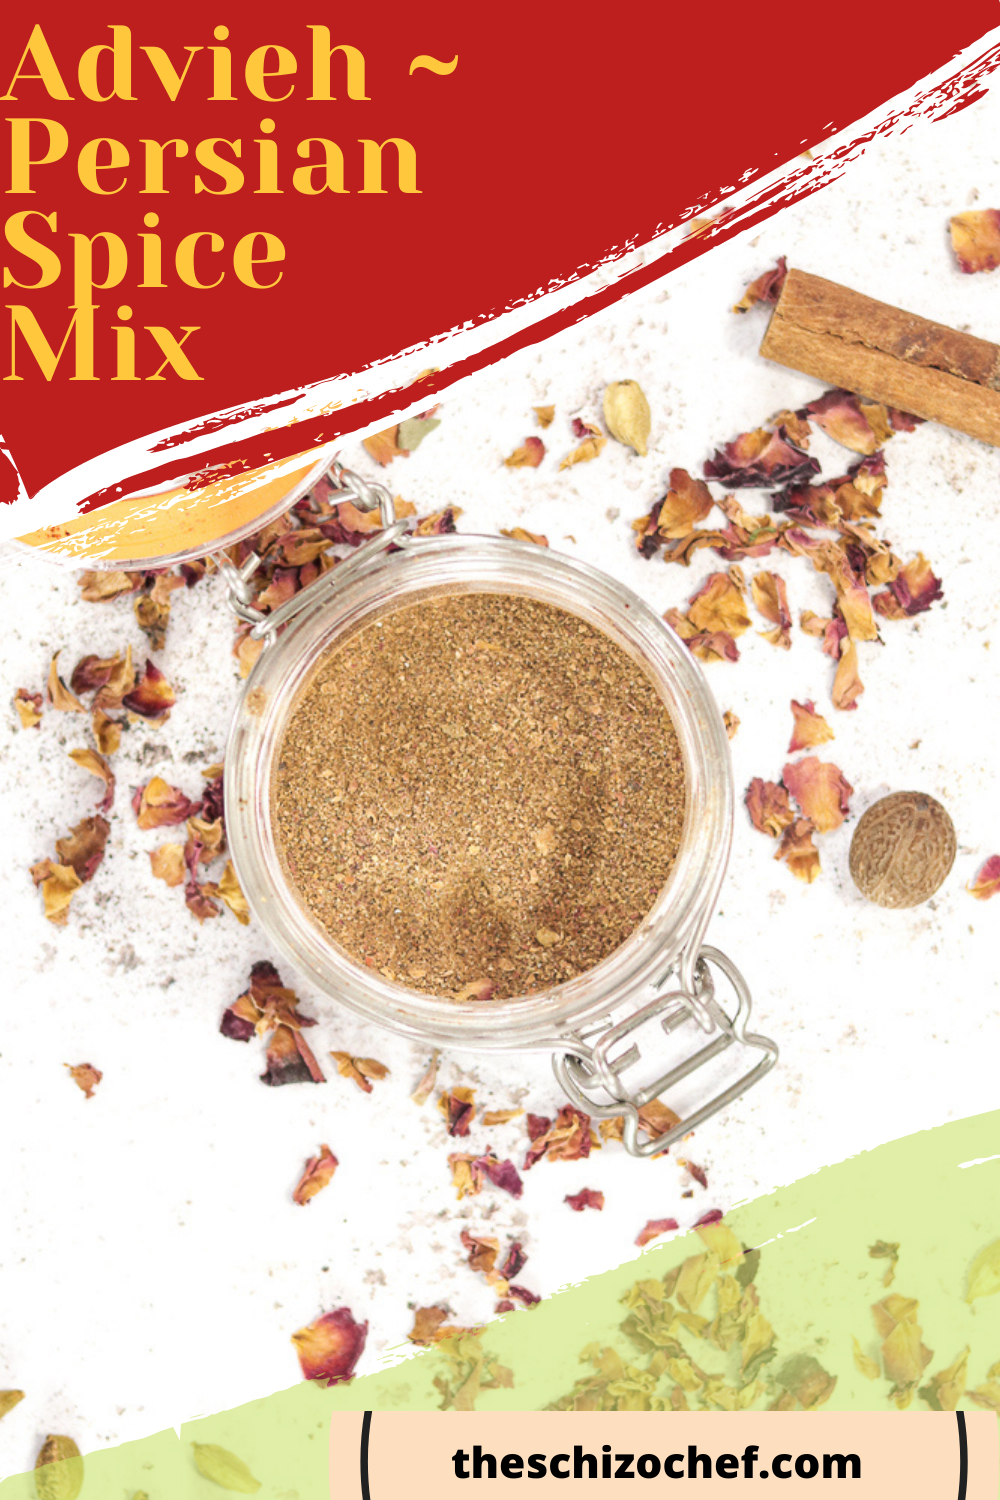 spices in jar with text